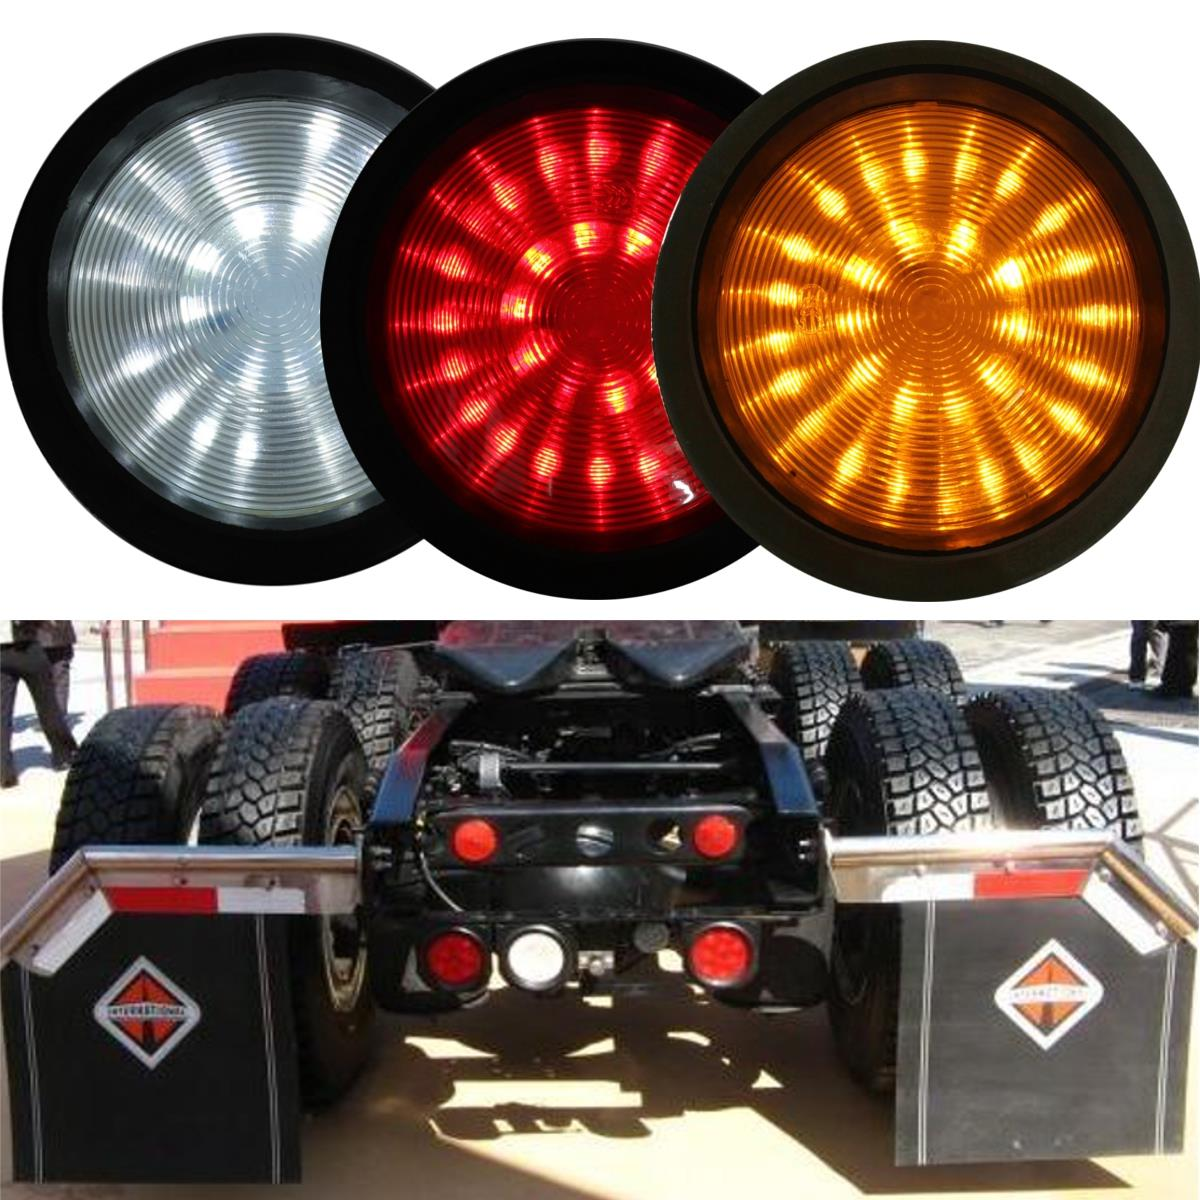 Audew 1x Circular UTE Truck Trailer Lorry Caravan Stop Rear Tail Indicator Light Lamp alpine ute 81r в харькове